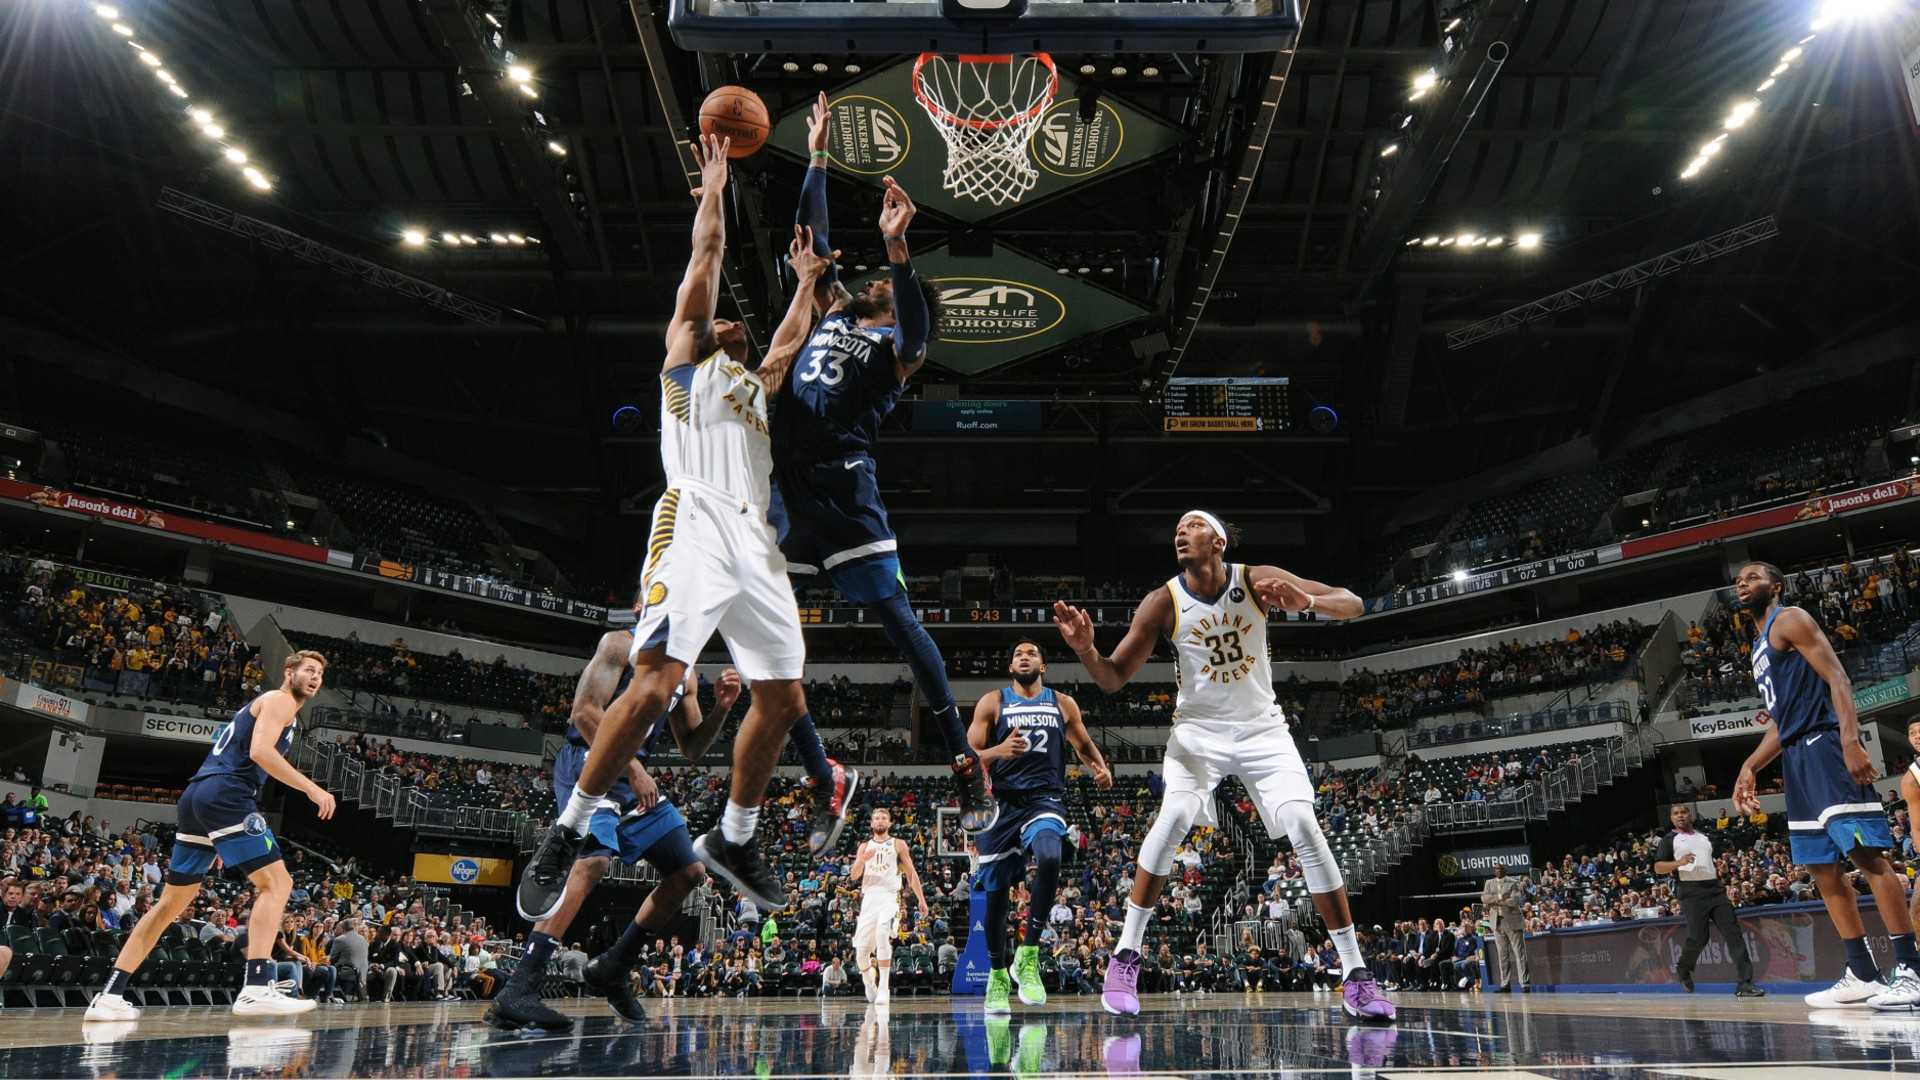 Timberwolves @ Pacers